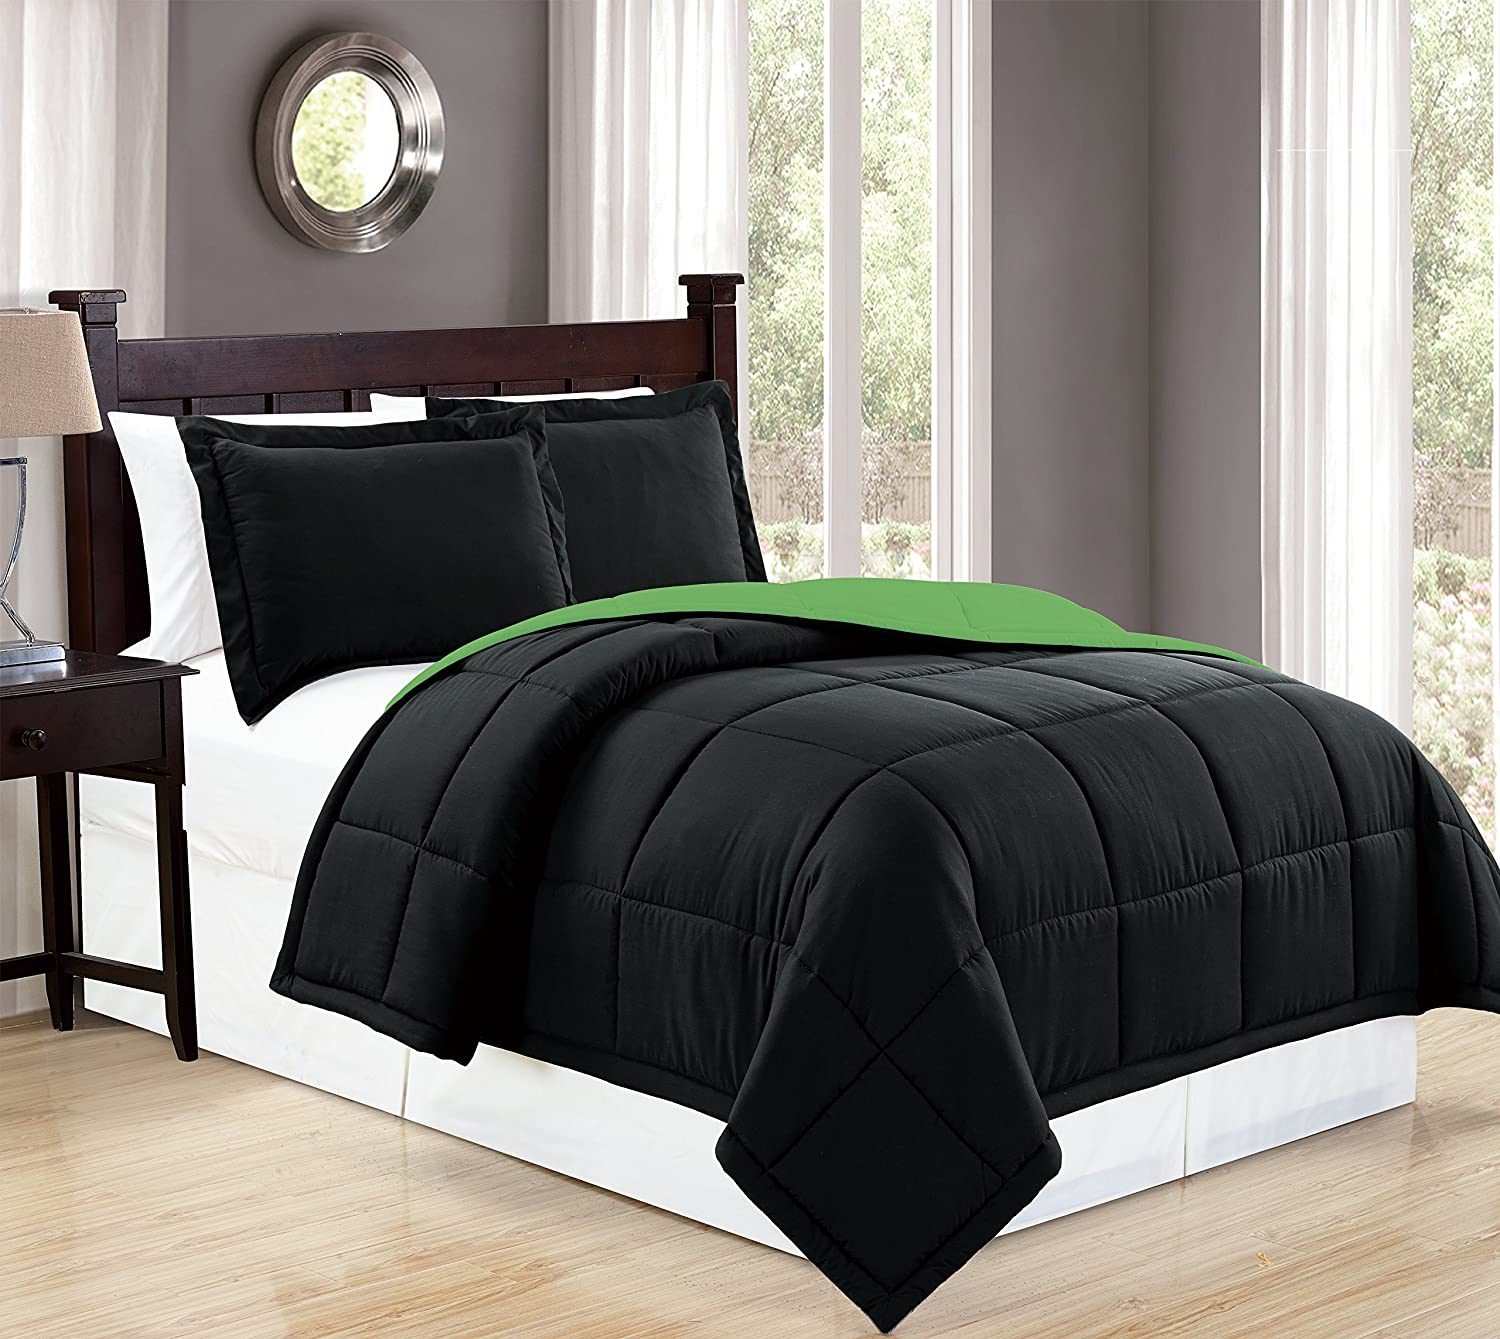 Mk Collection Down Alternative Comforter Set 3pc king, Black/Lime Green